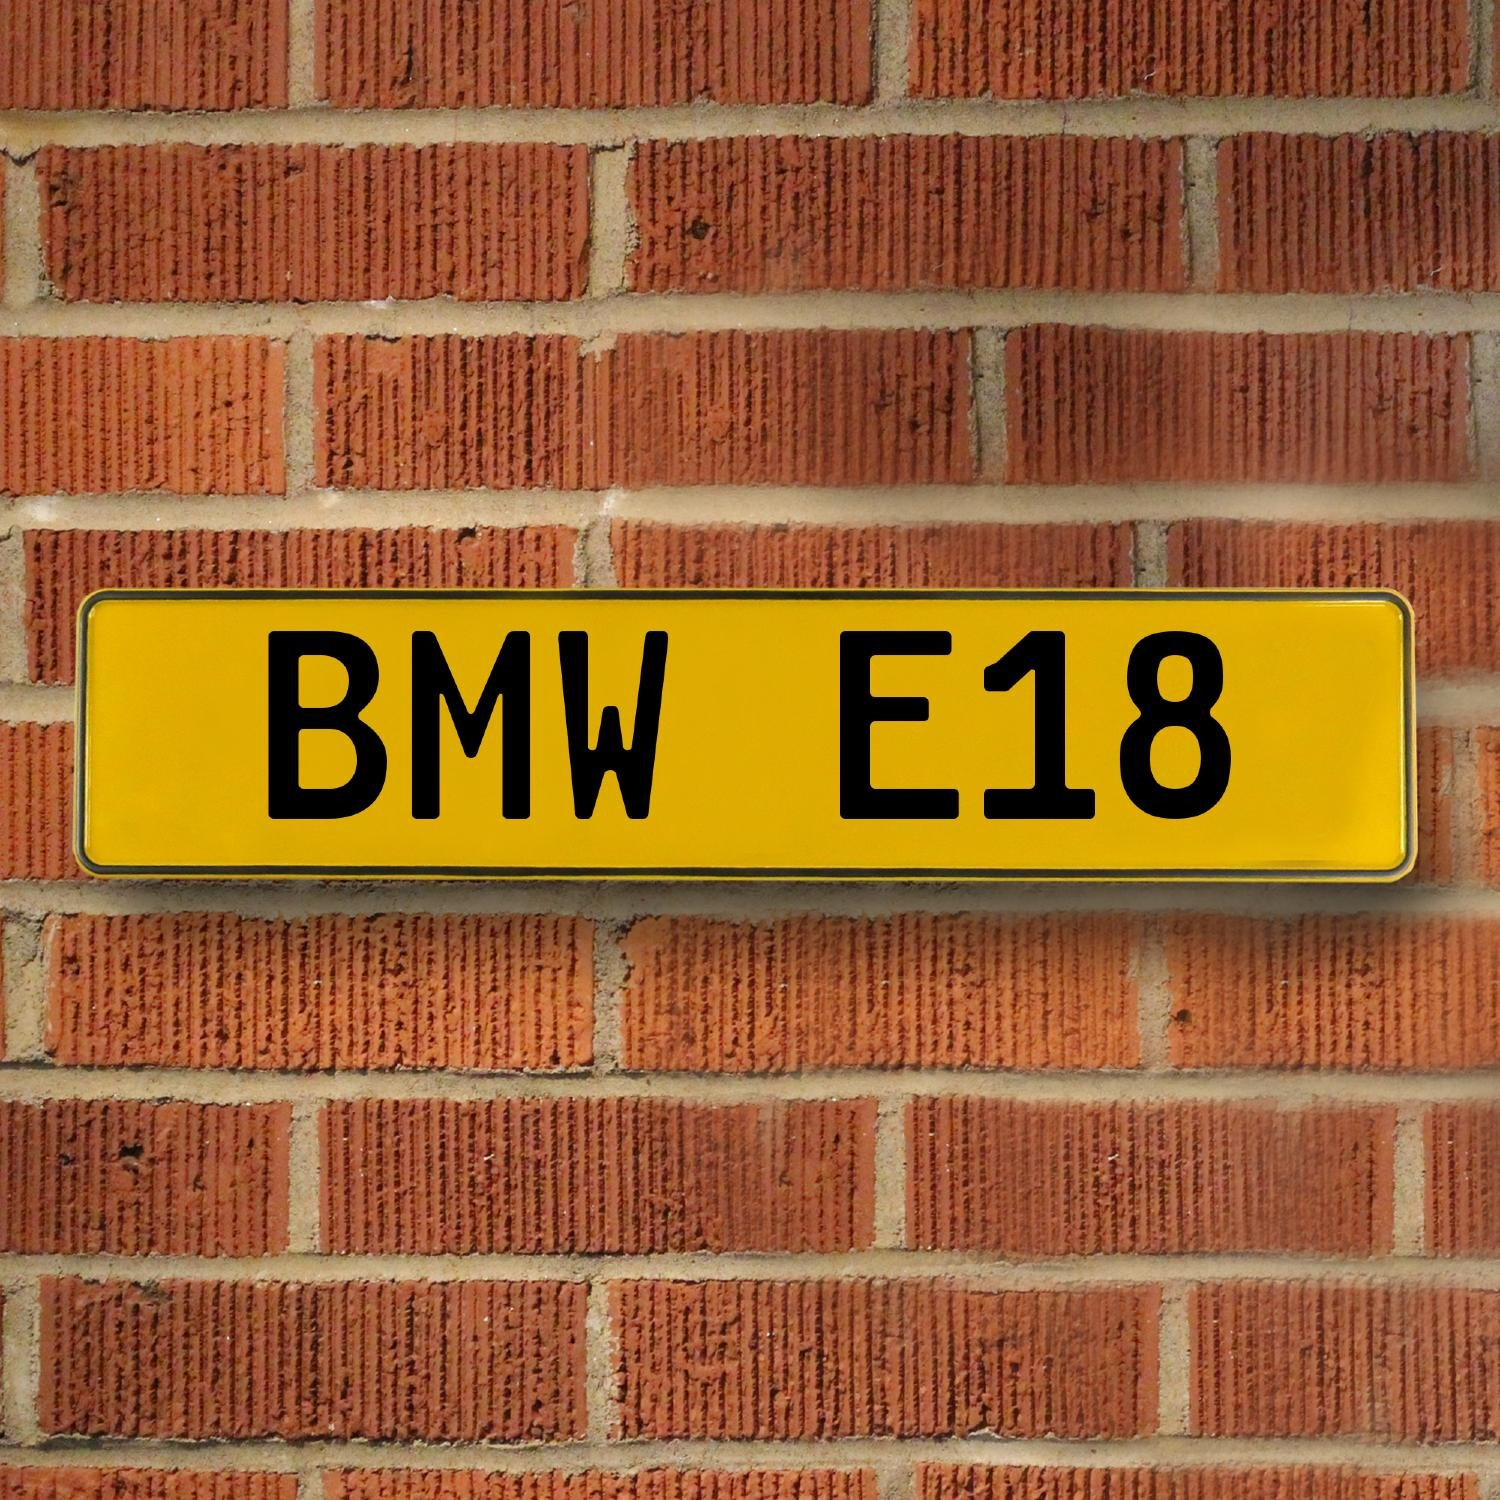 BMW E18 Yellow Stamped Street Sign Mancave Wall Art | eBay